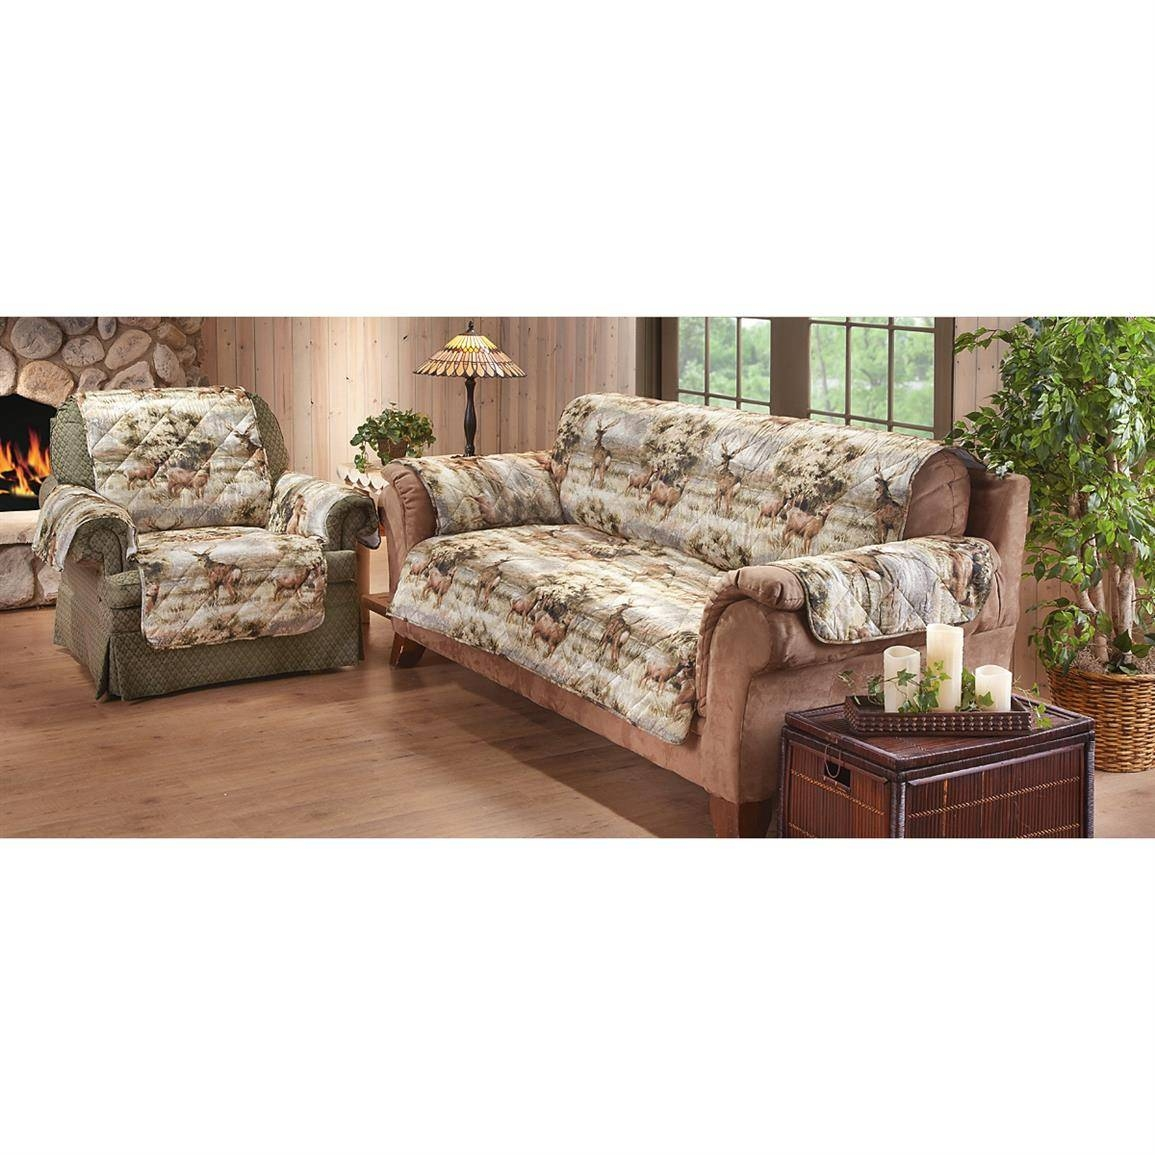 Sofas Center : Camo Sofa Covers Pet Coverscamo Cover Recliner for Camo Sofa Cover (Image 19 of 30)